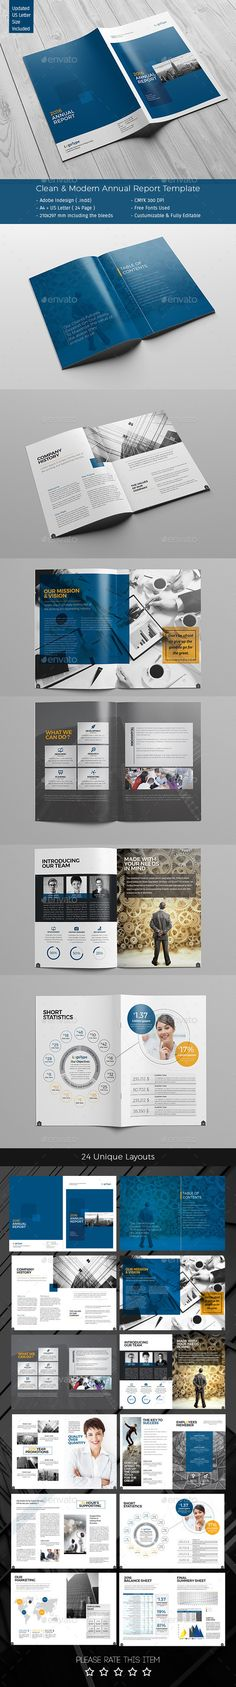 Annual Report Template 48 Pages - annual report template design